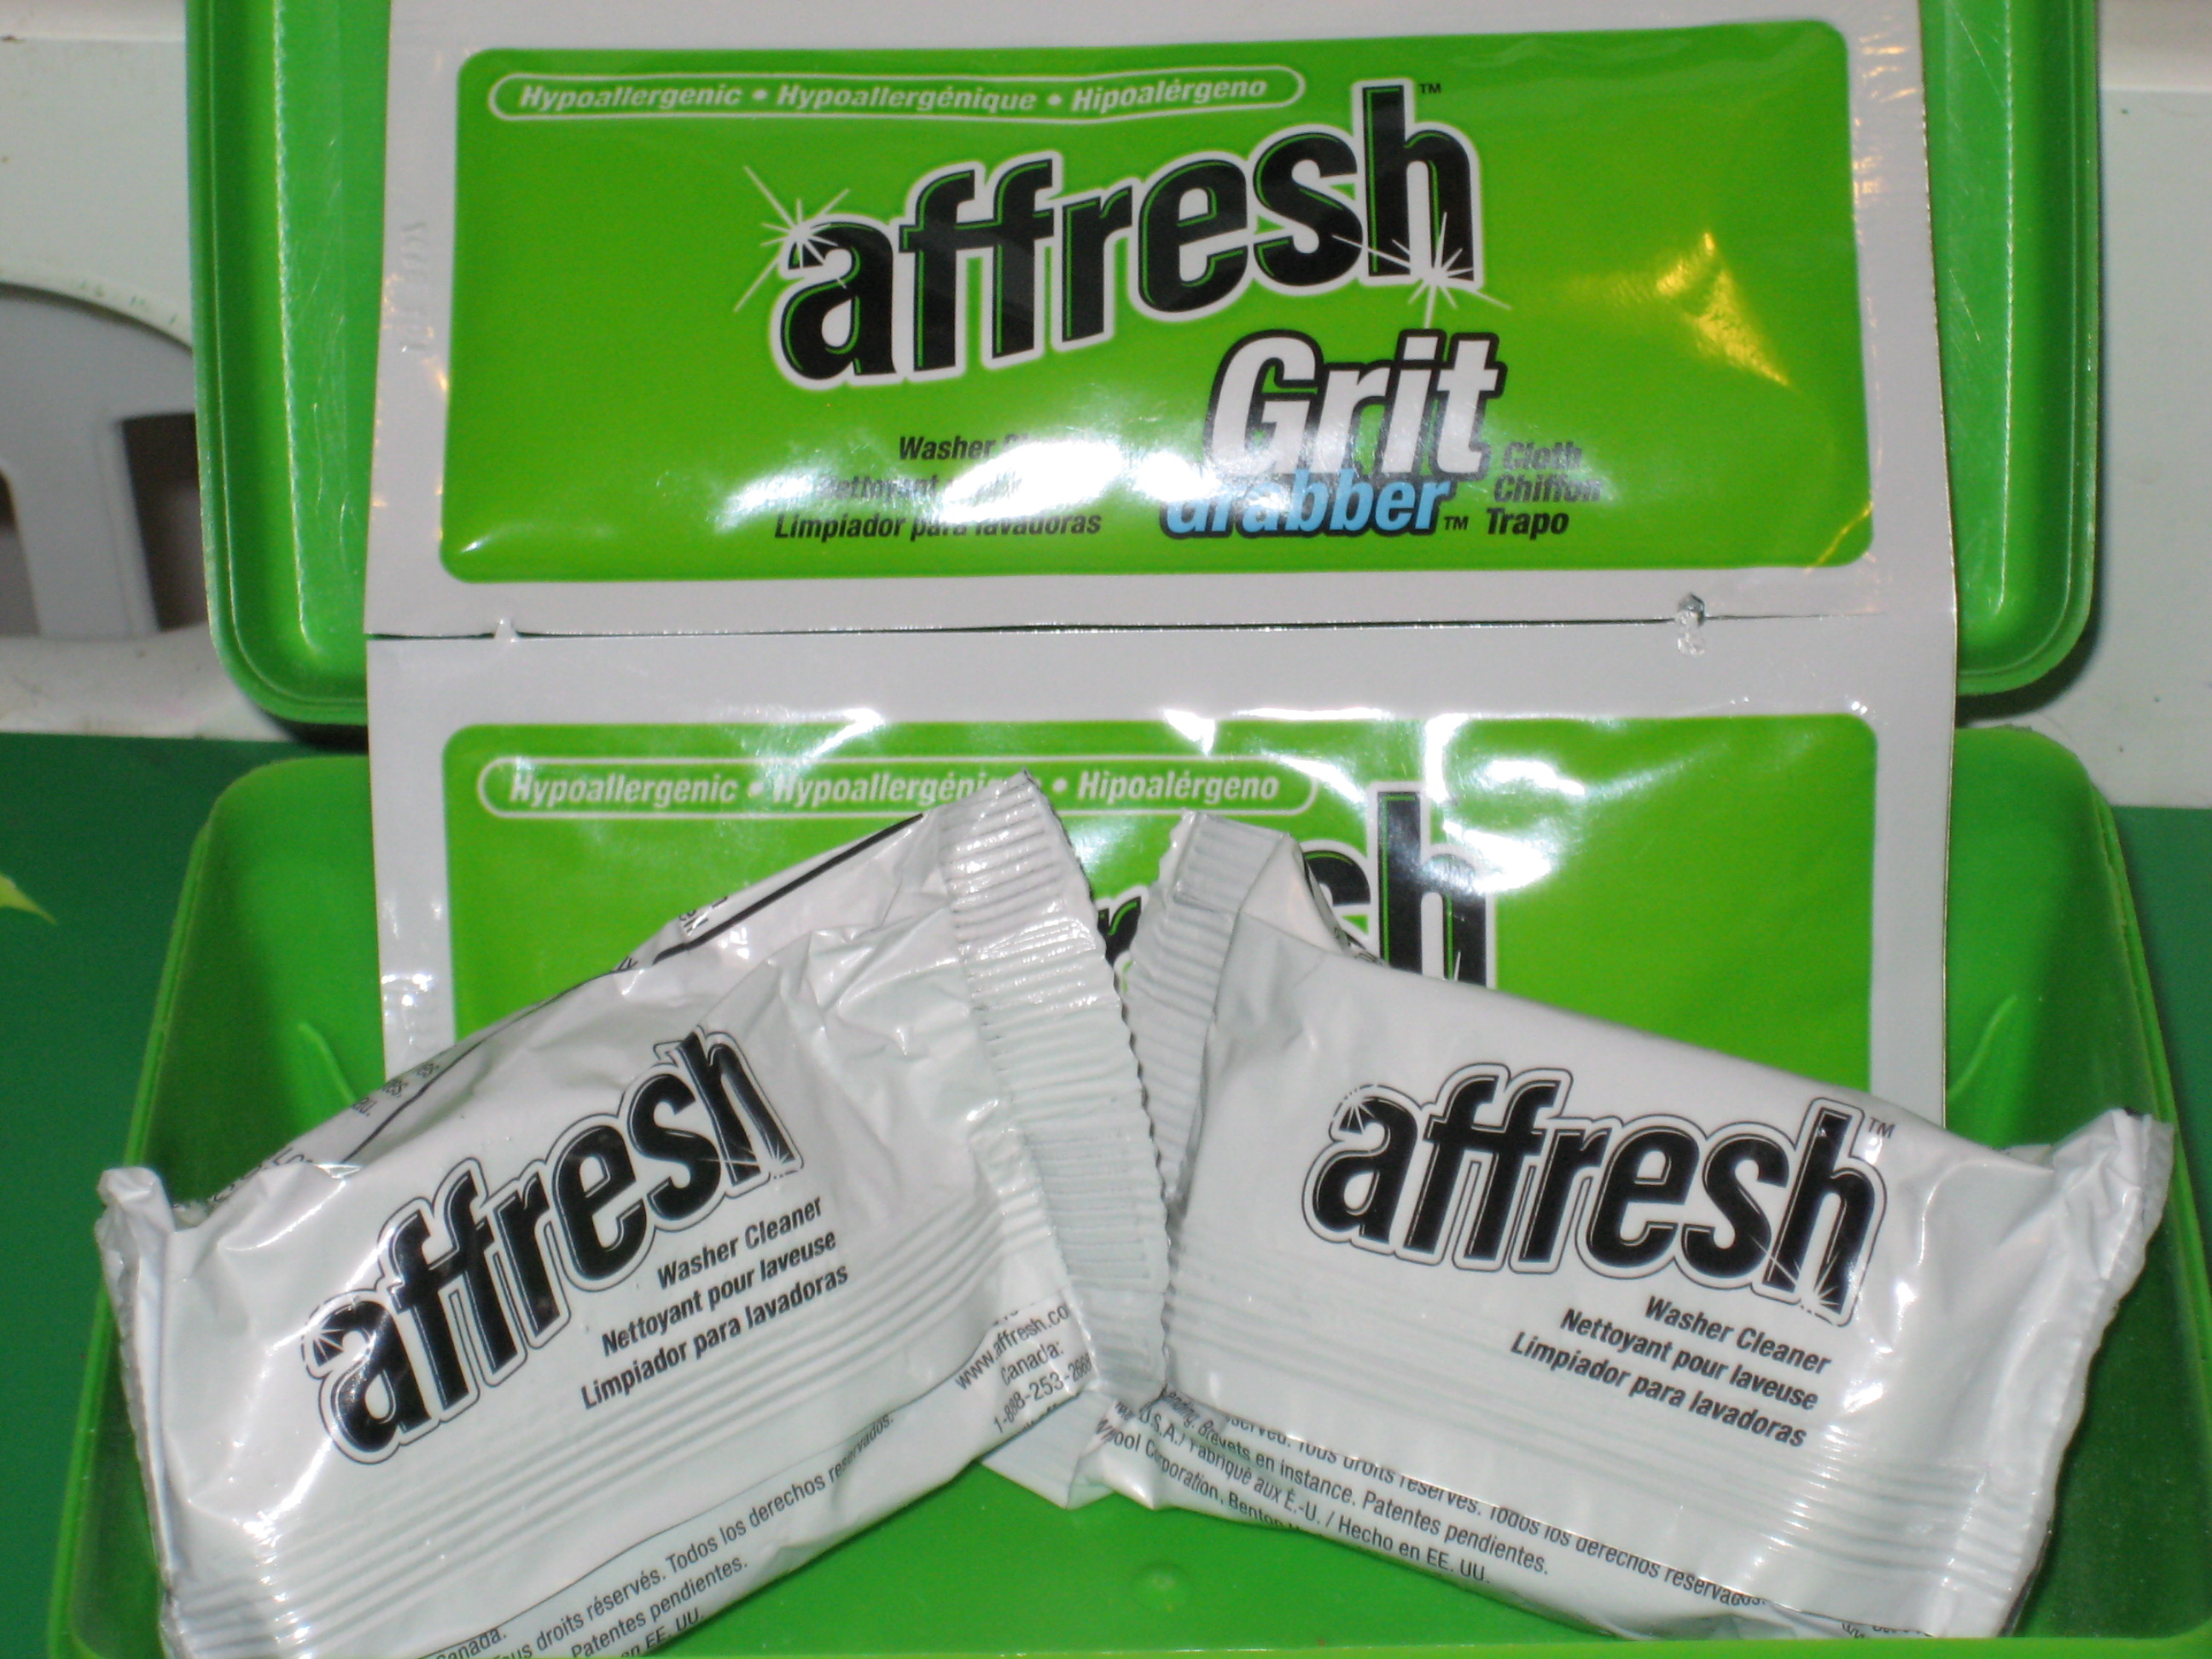 affresh washing machine cleaner kit